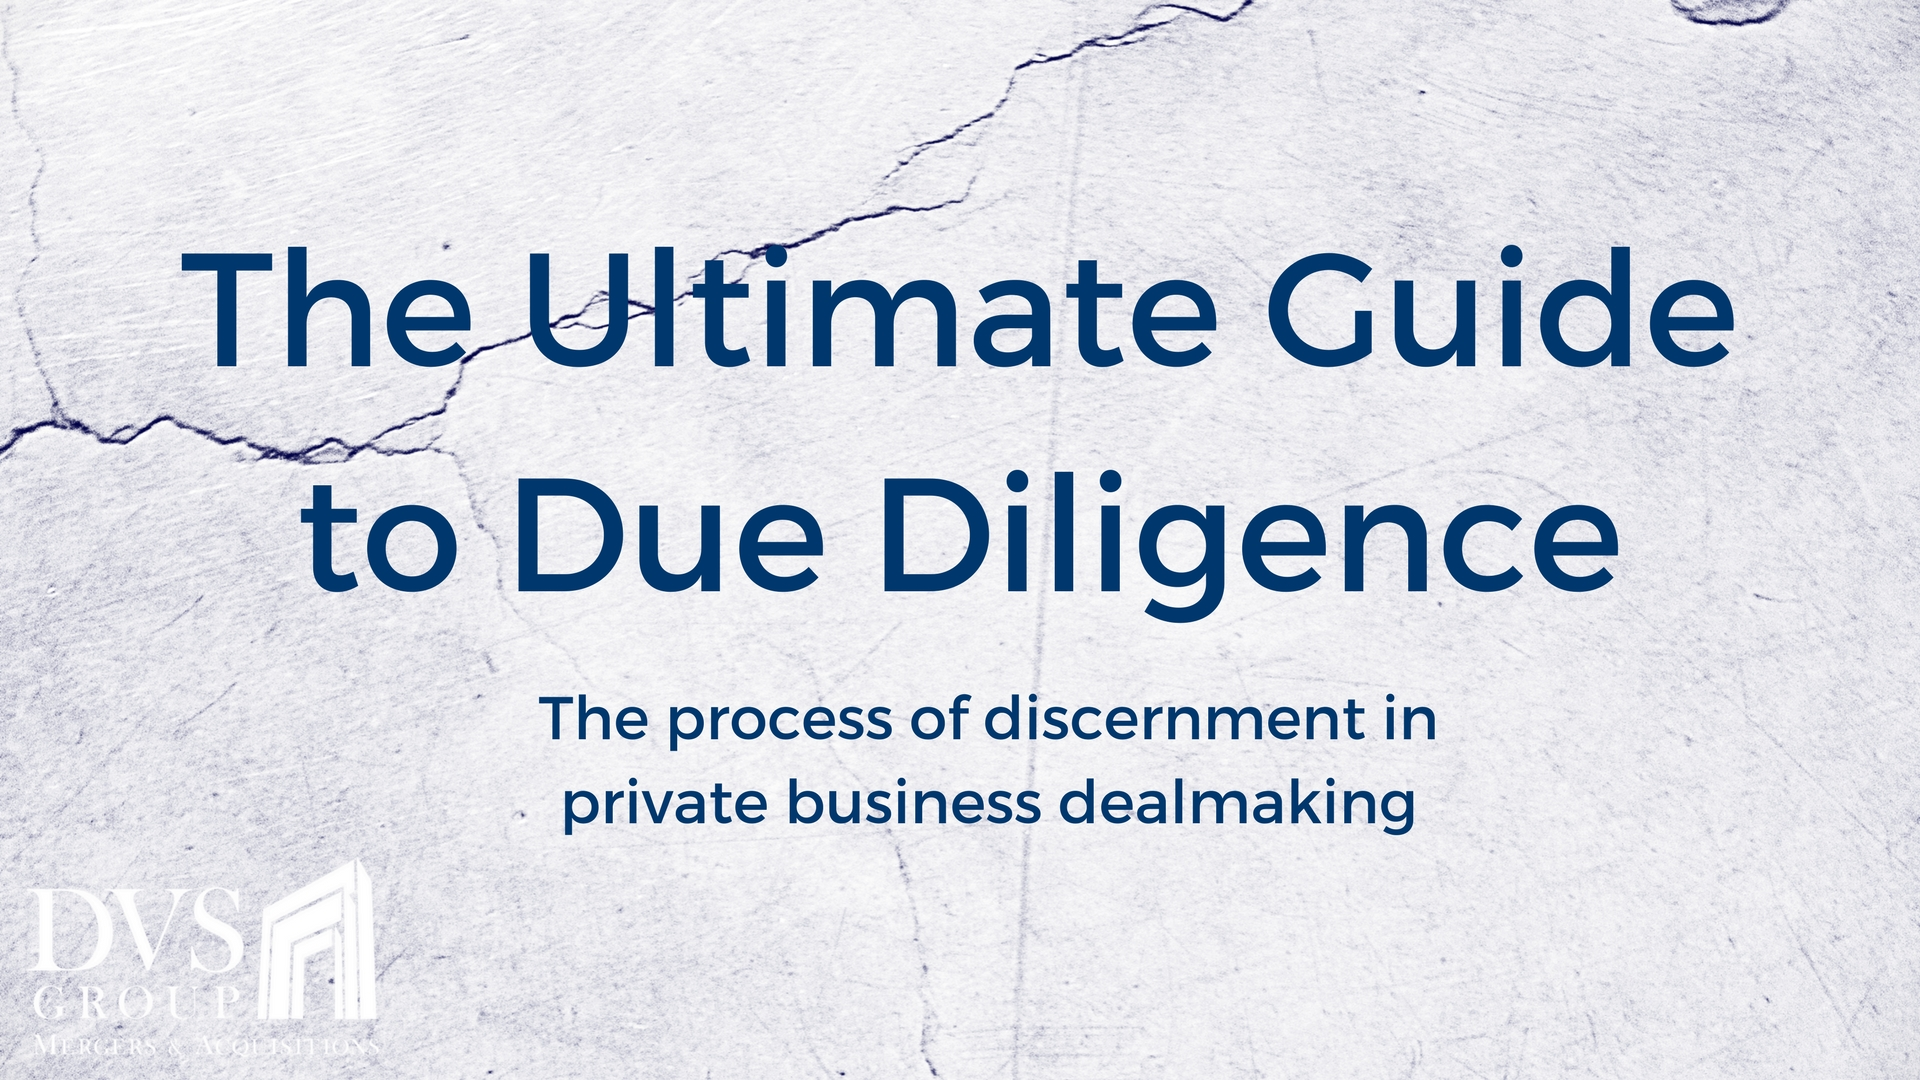 The Ultimate Guide to Due Diligence - the process of discernment in private business dealmaking